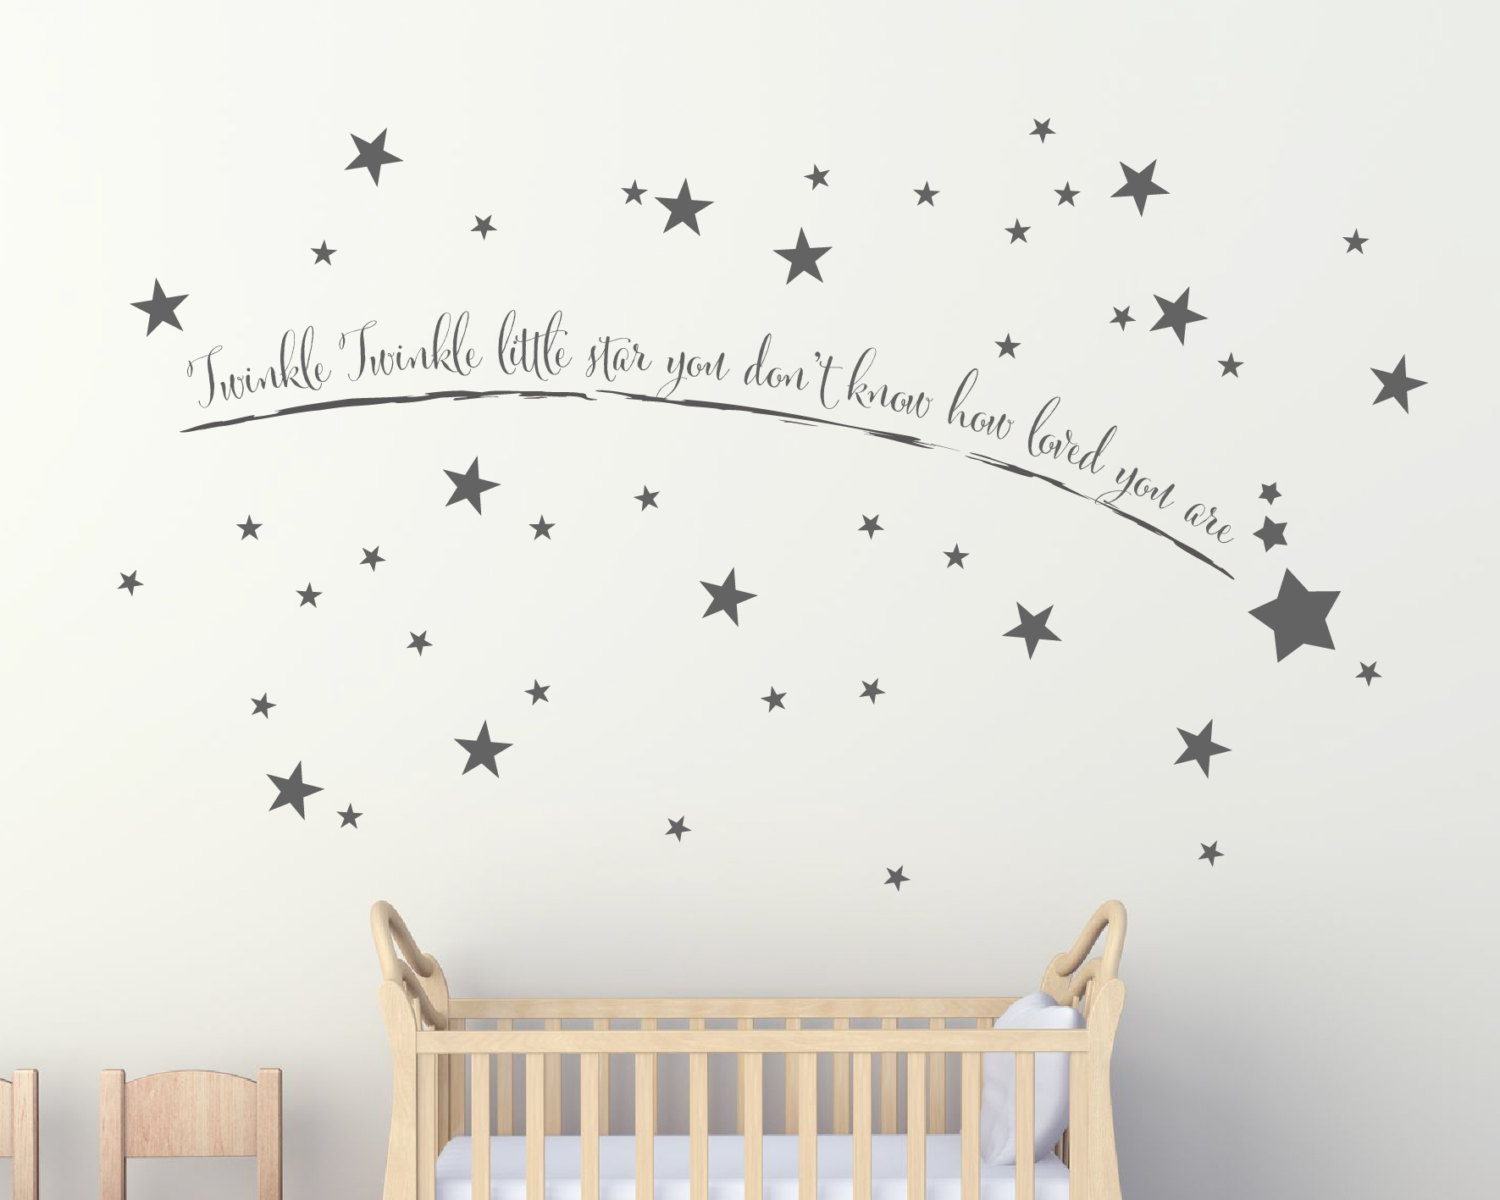 Star Wall Decor Ideas: Shooting Star Wall Art